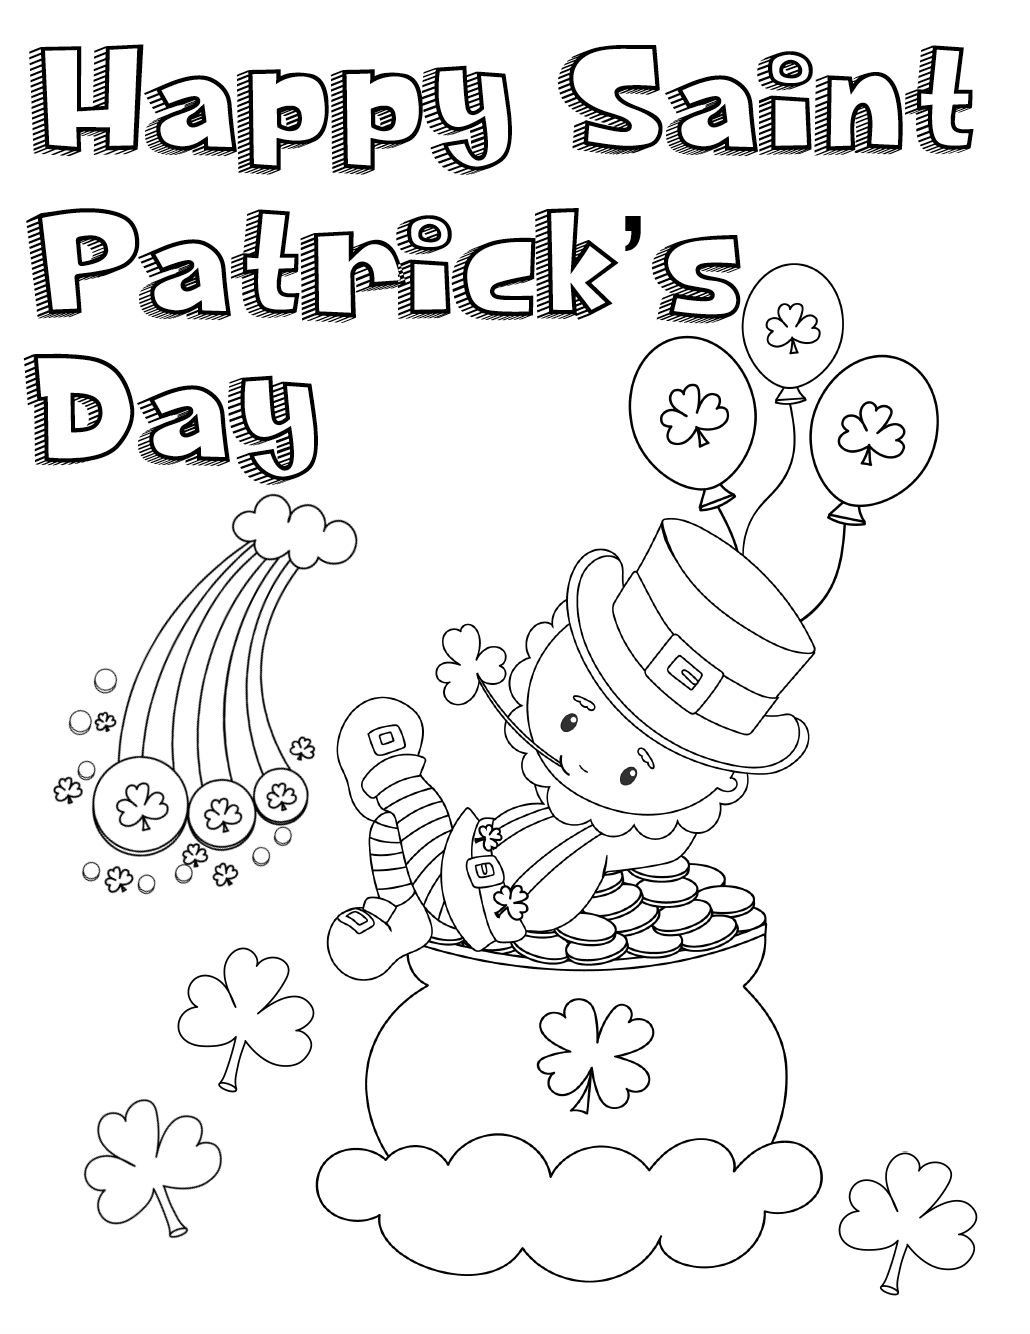 st patricks day coloring pages free printable st patricks day coloring pages 4 designs patricks st pages coloring day